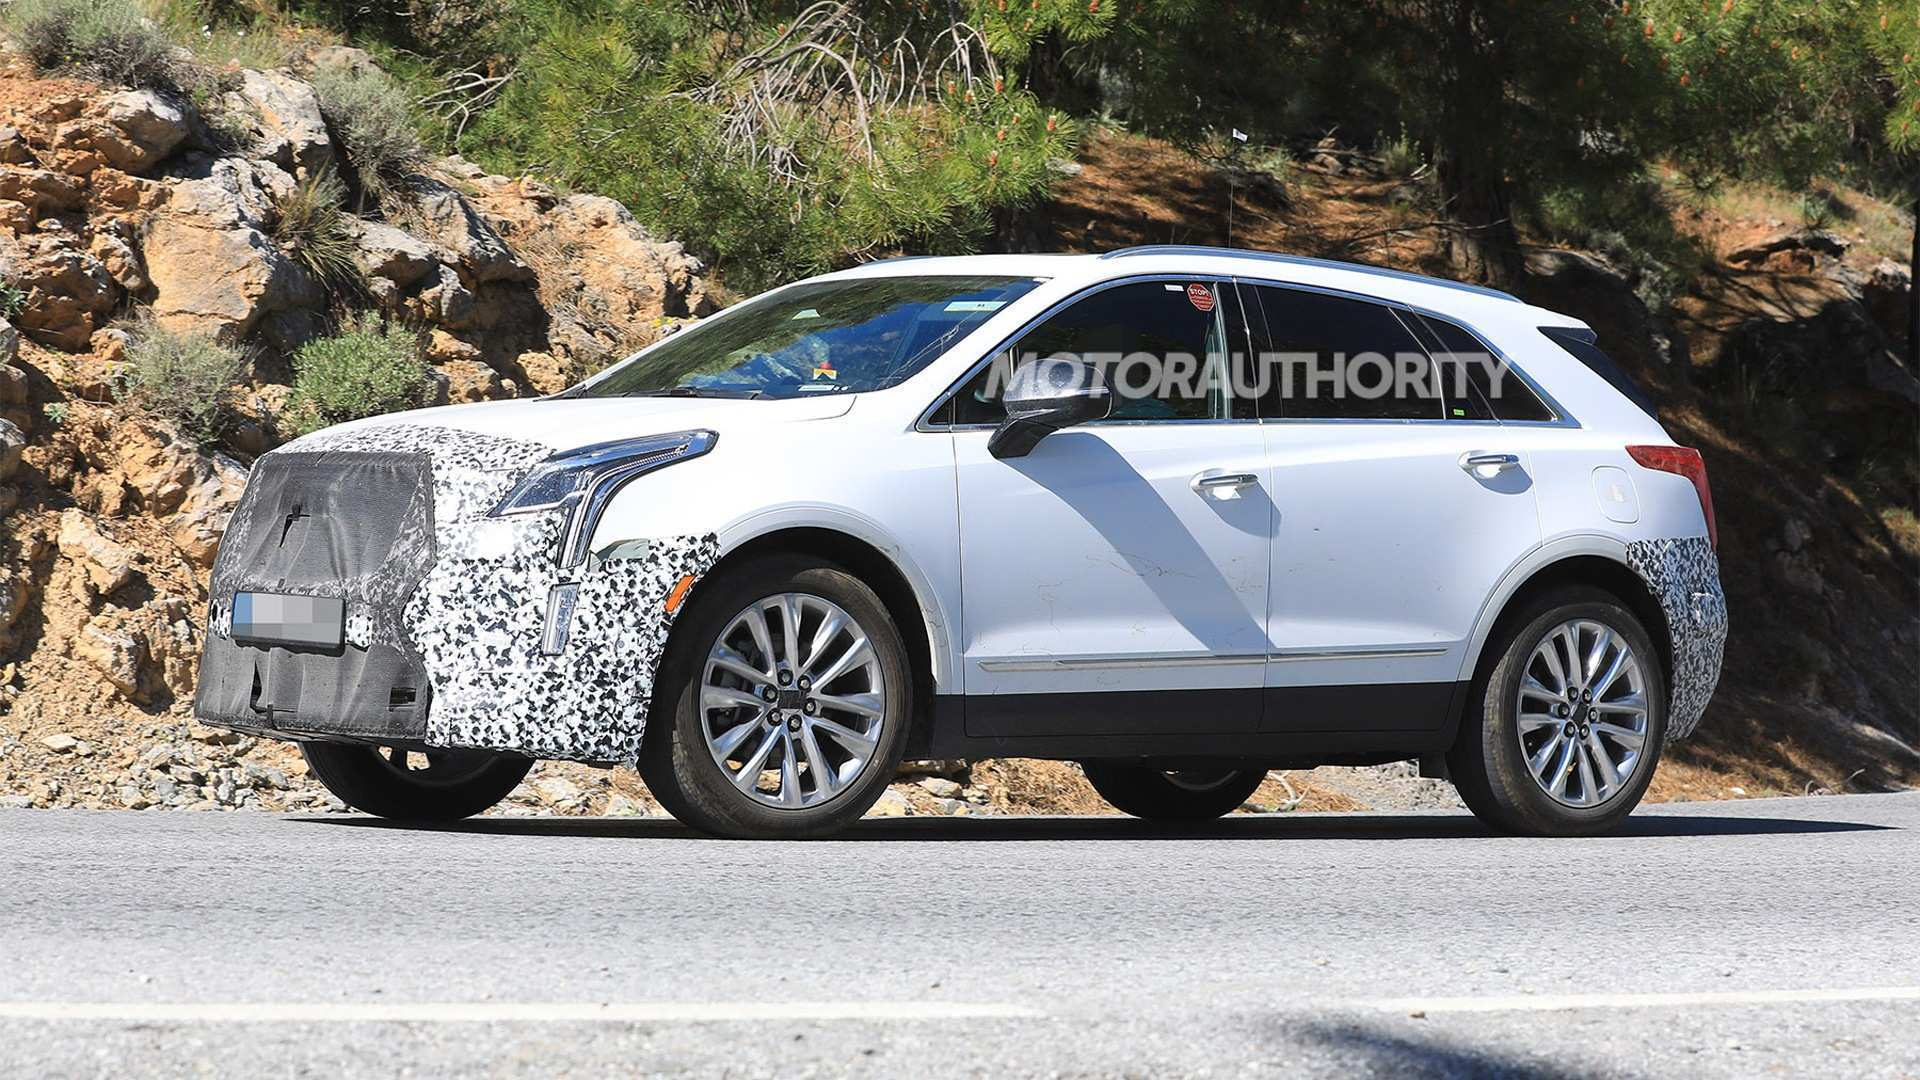 68 New 2020 Spy Shots Cadillac Xt5 Overview with 2020 Spy Shots Cadillac Xt5